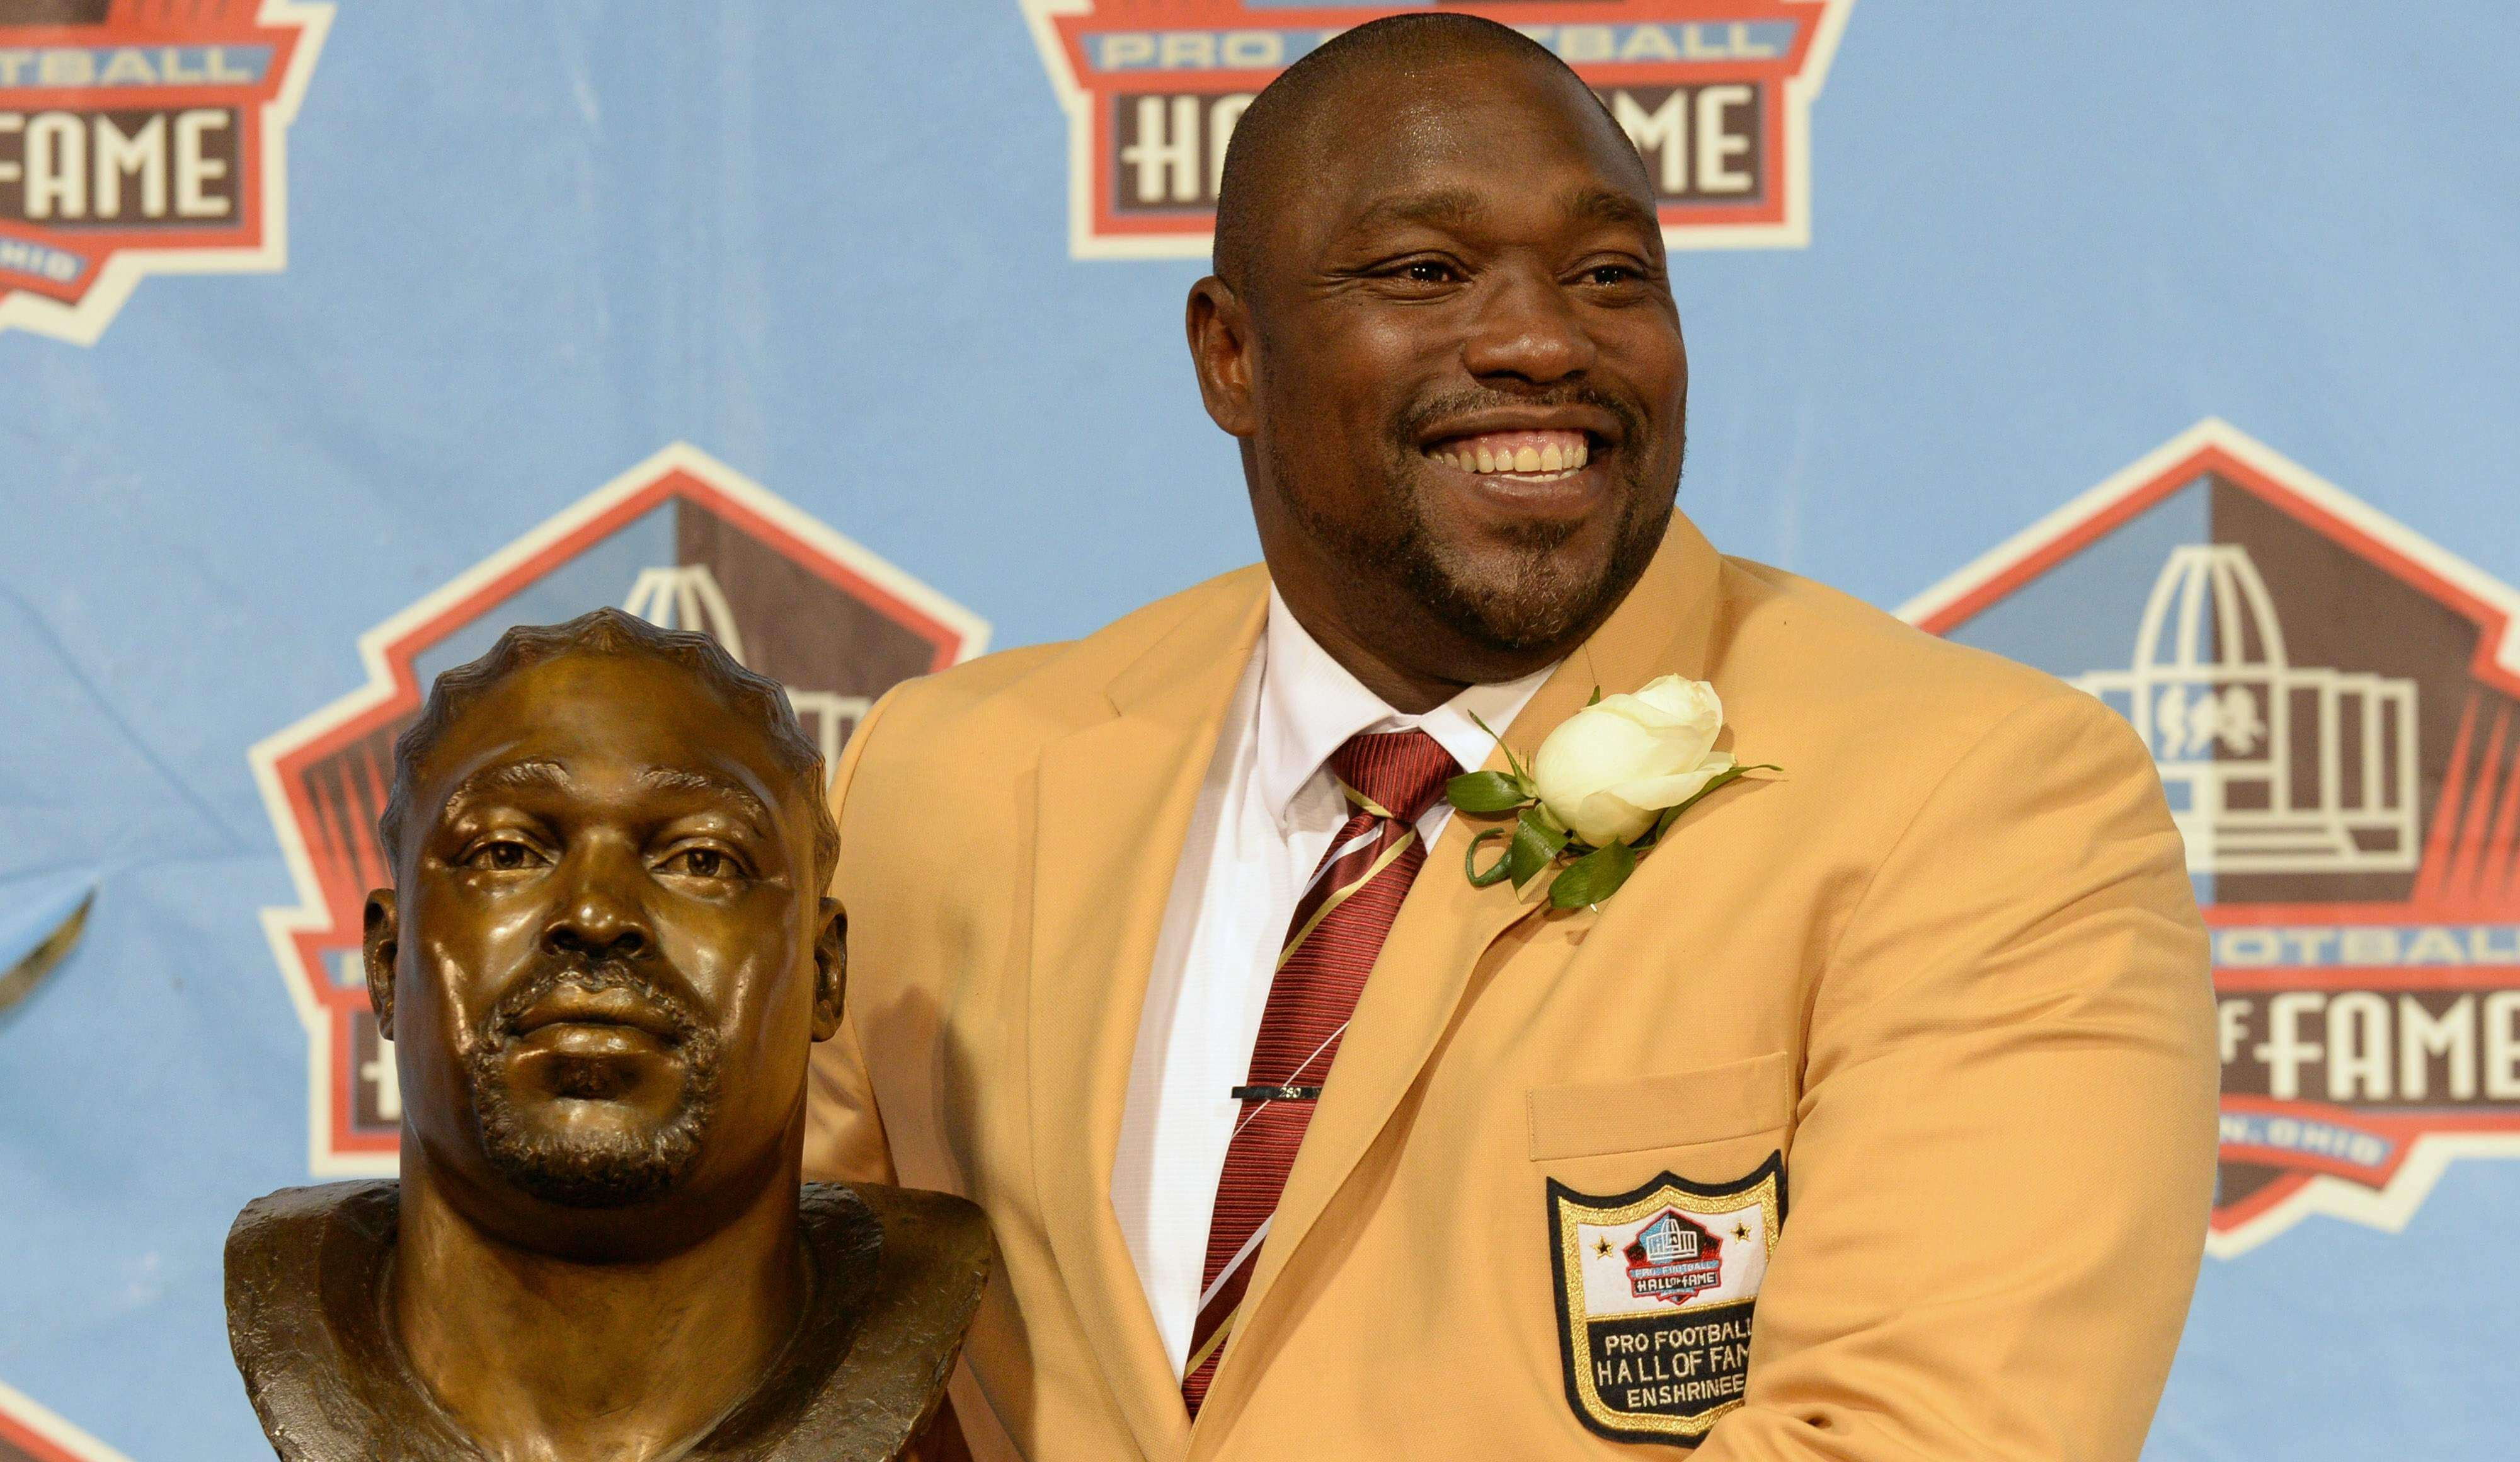 Warren Sapp — Pro Football Hall of Famer, and greatest defensive tackle of all time!!